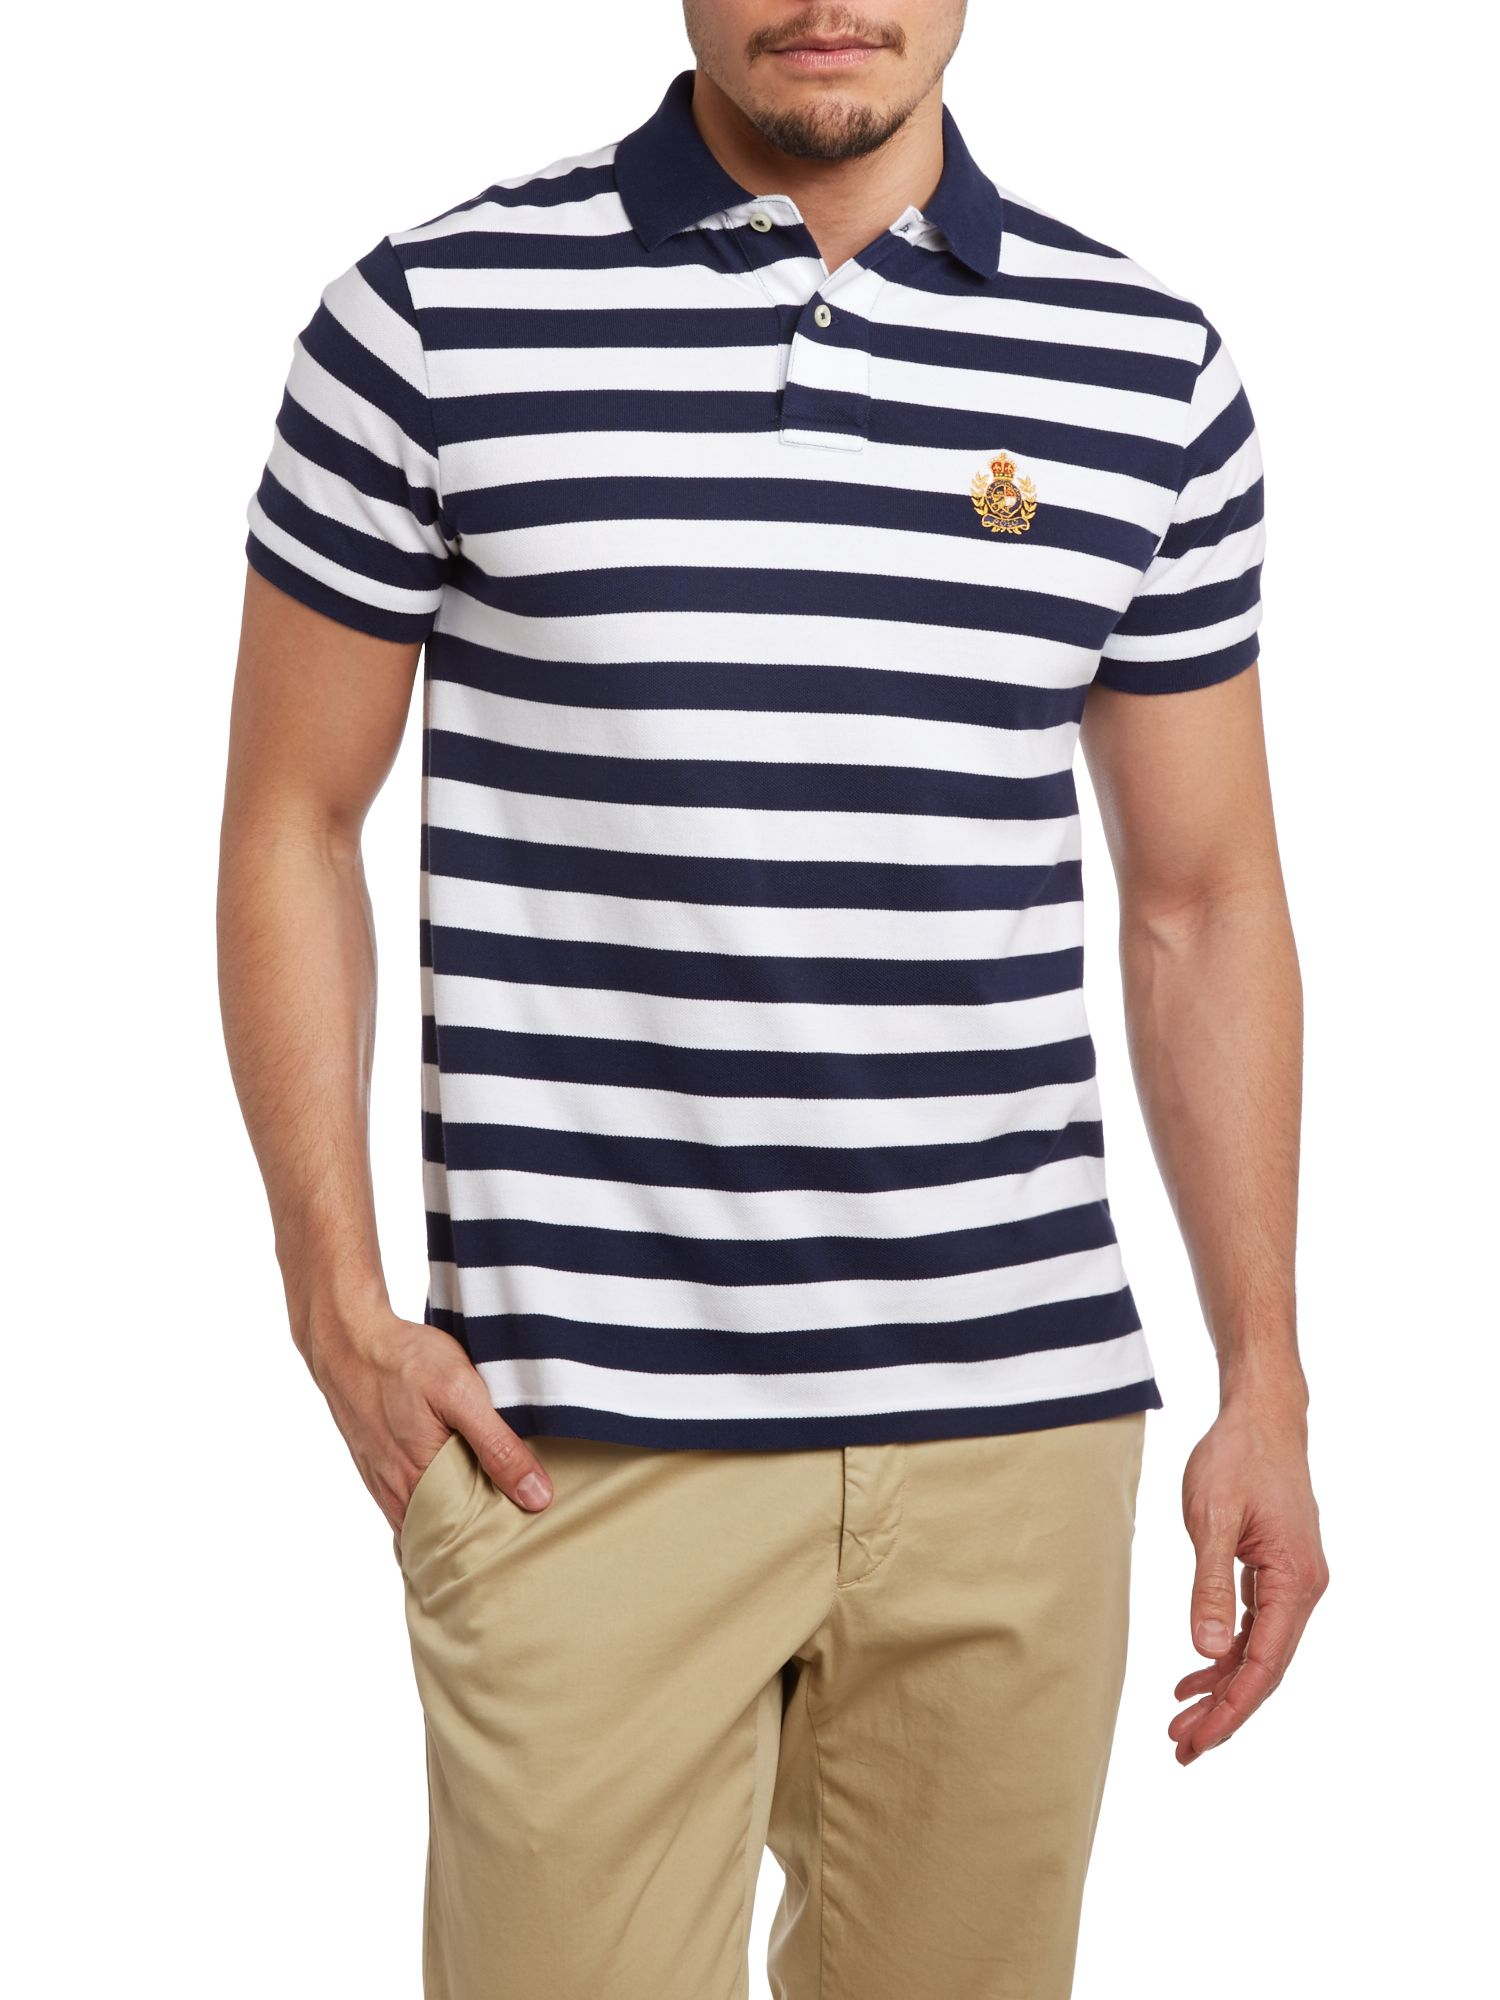 polo ralph lauren striped jersey t shirt ralph lauren polo t shirts male models picture. Black Bedroom Furniture Sets. Home Design Ideas